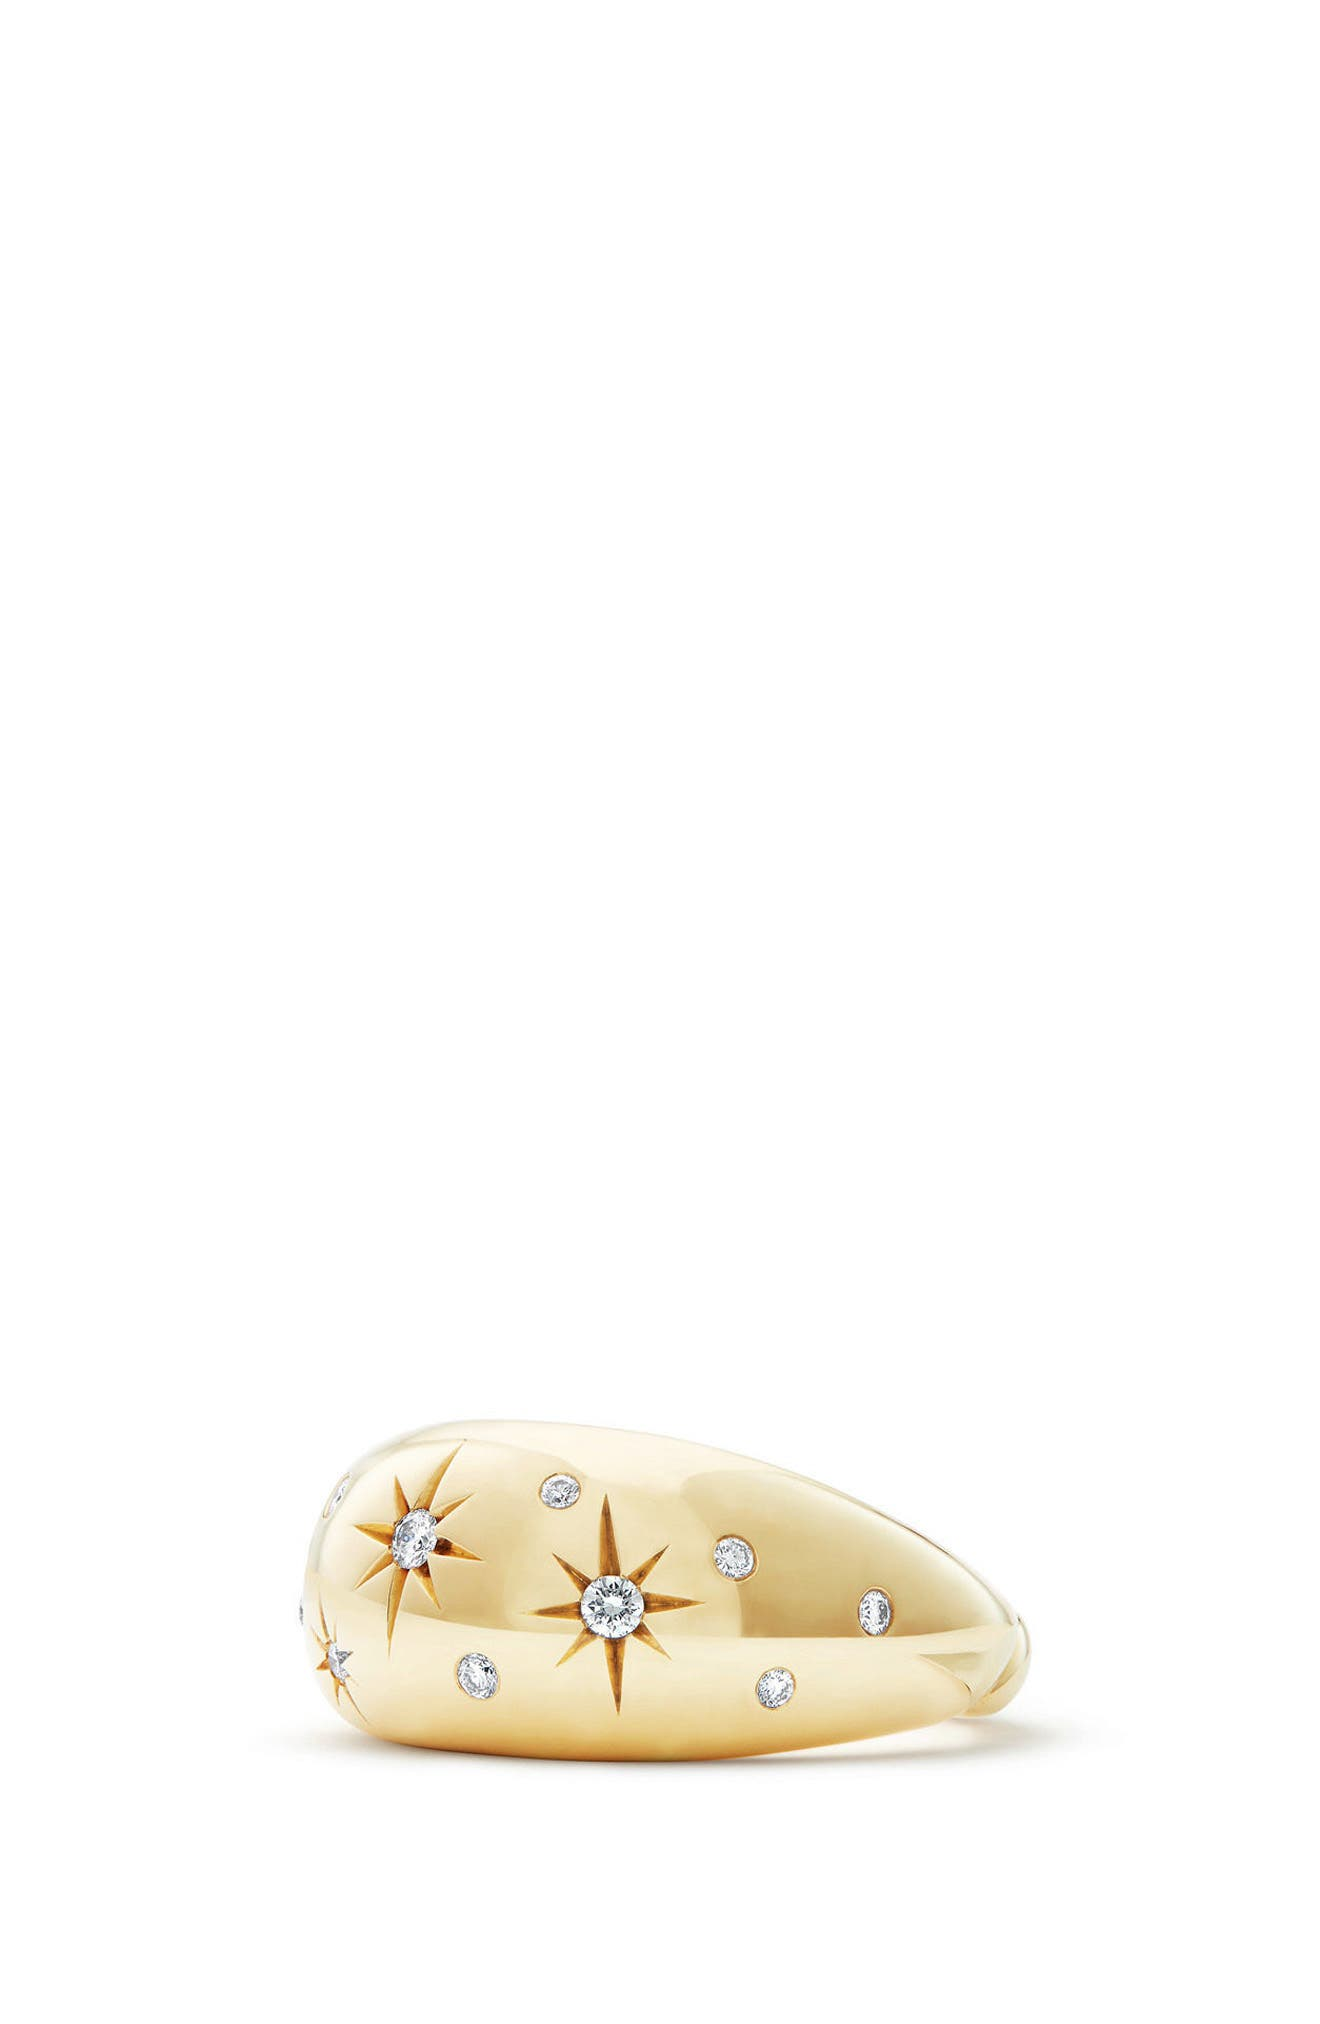 David Yurman Pure Form Ring with Diamonds in 18K Gold